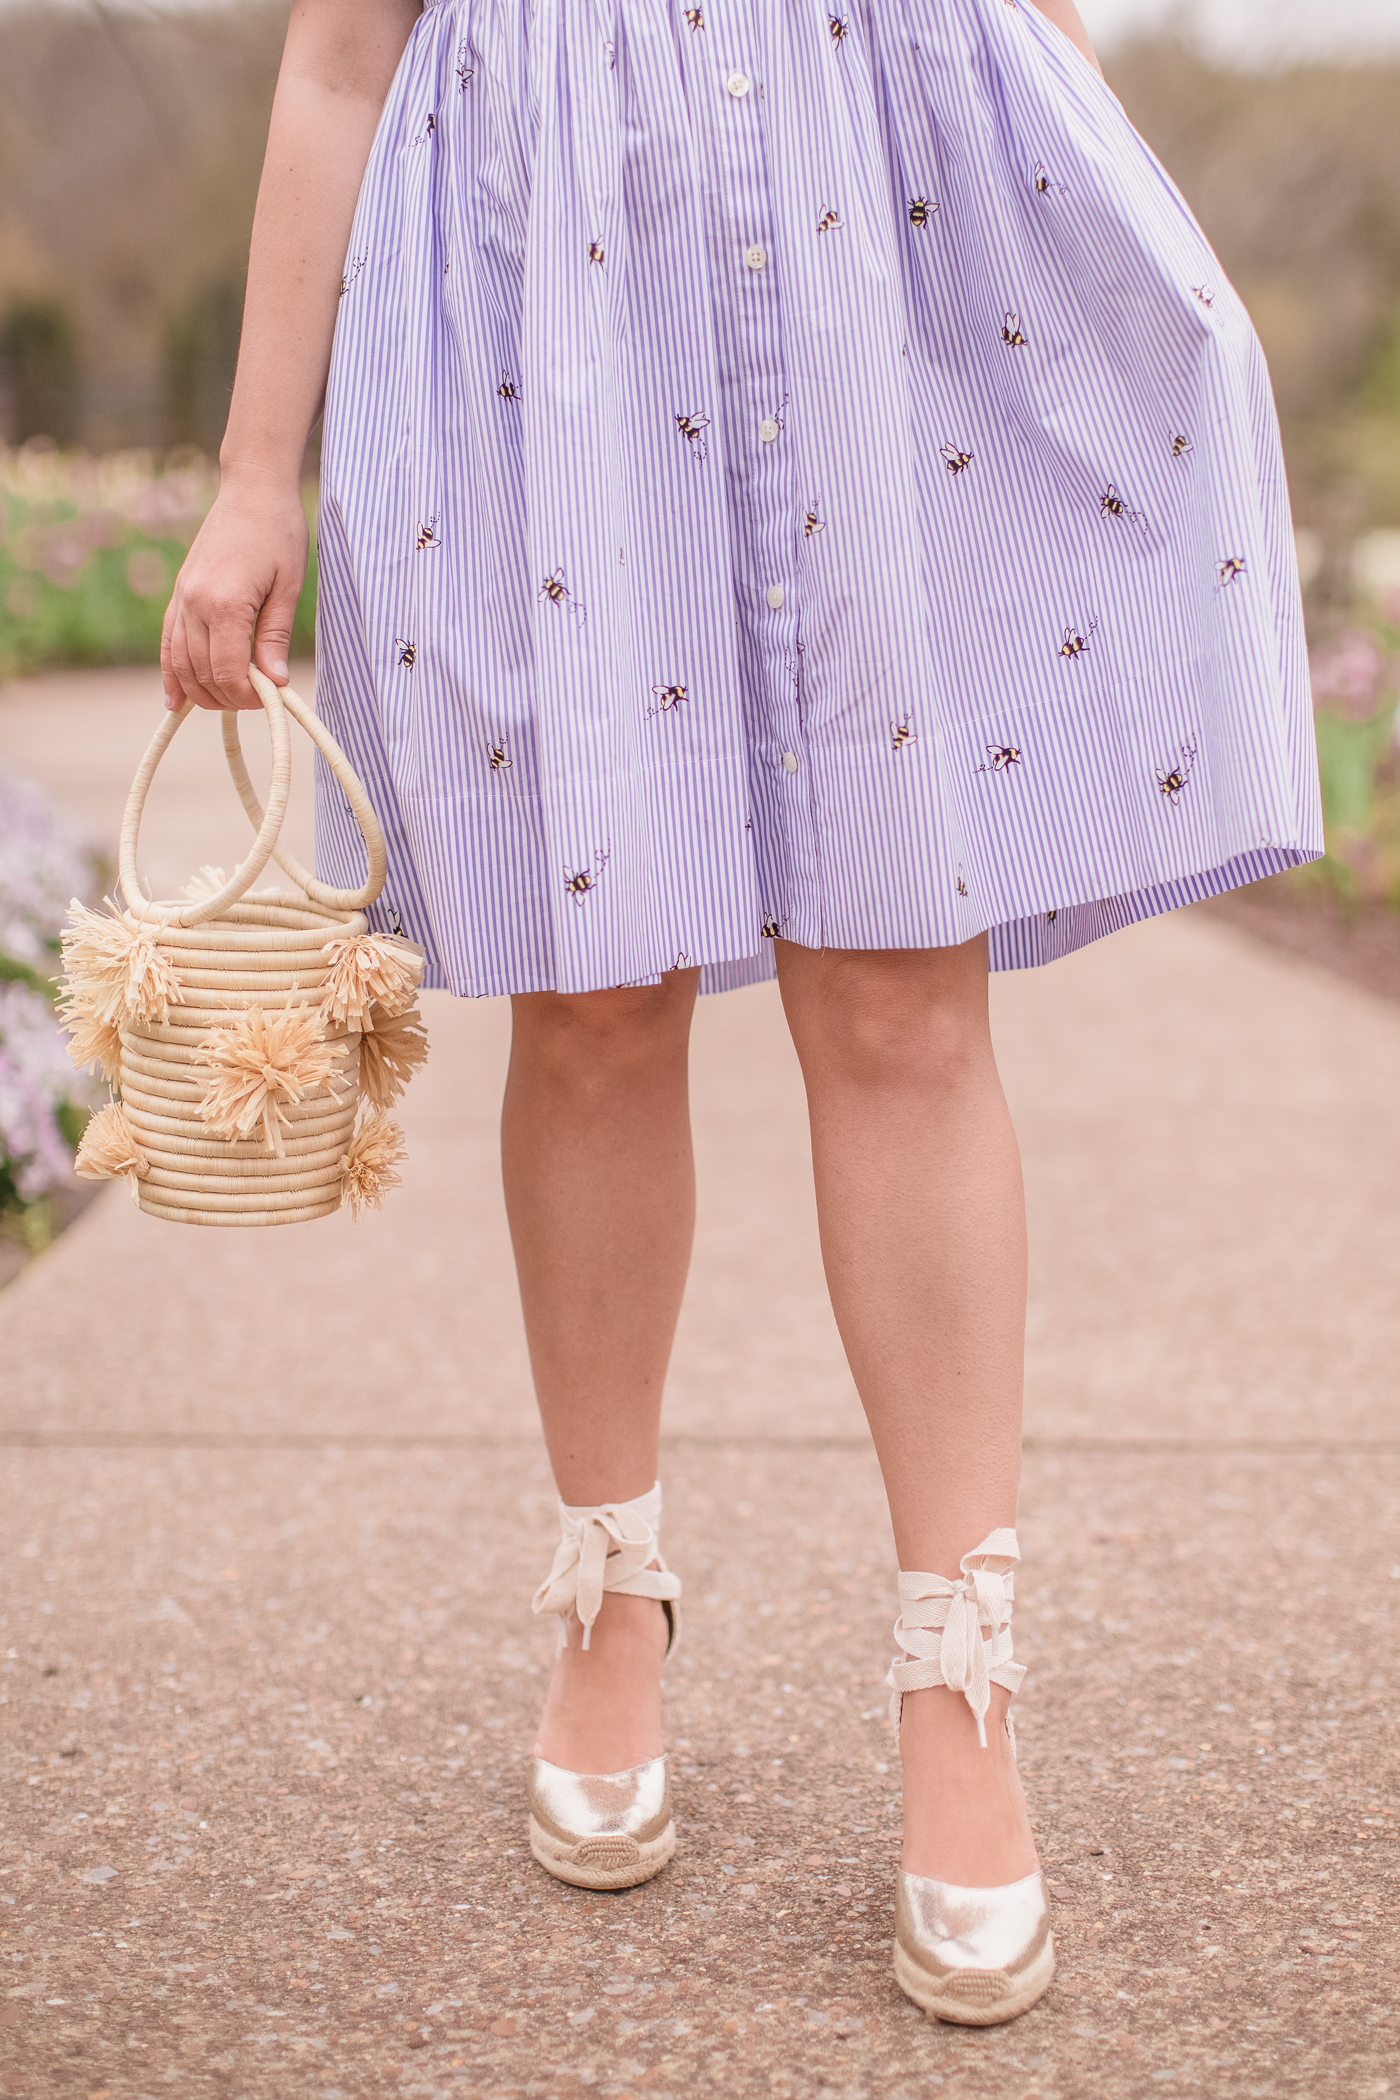 A Buzz Worthy Dress